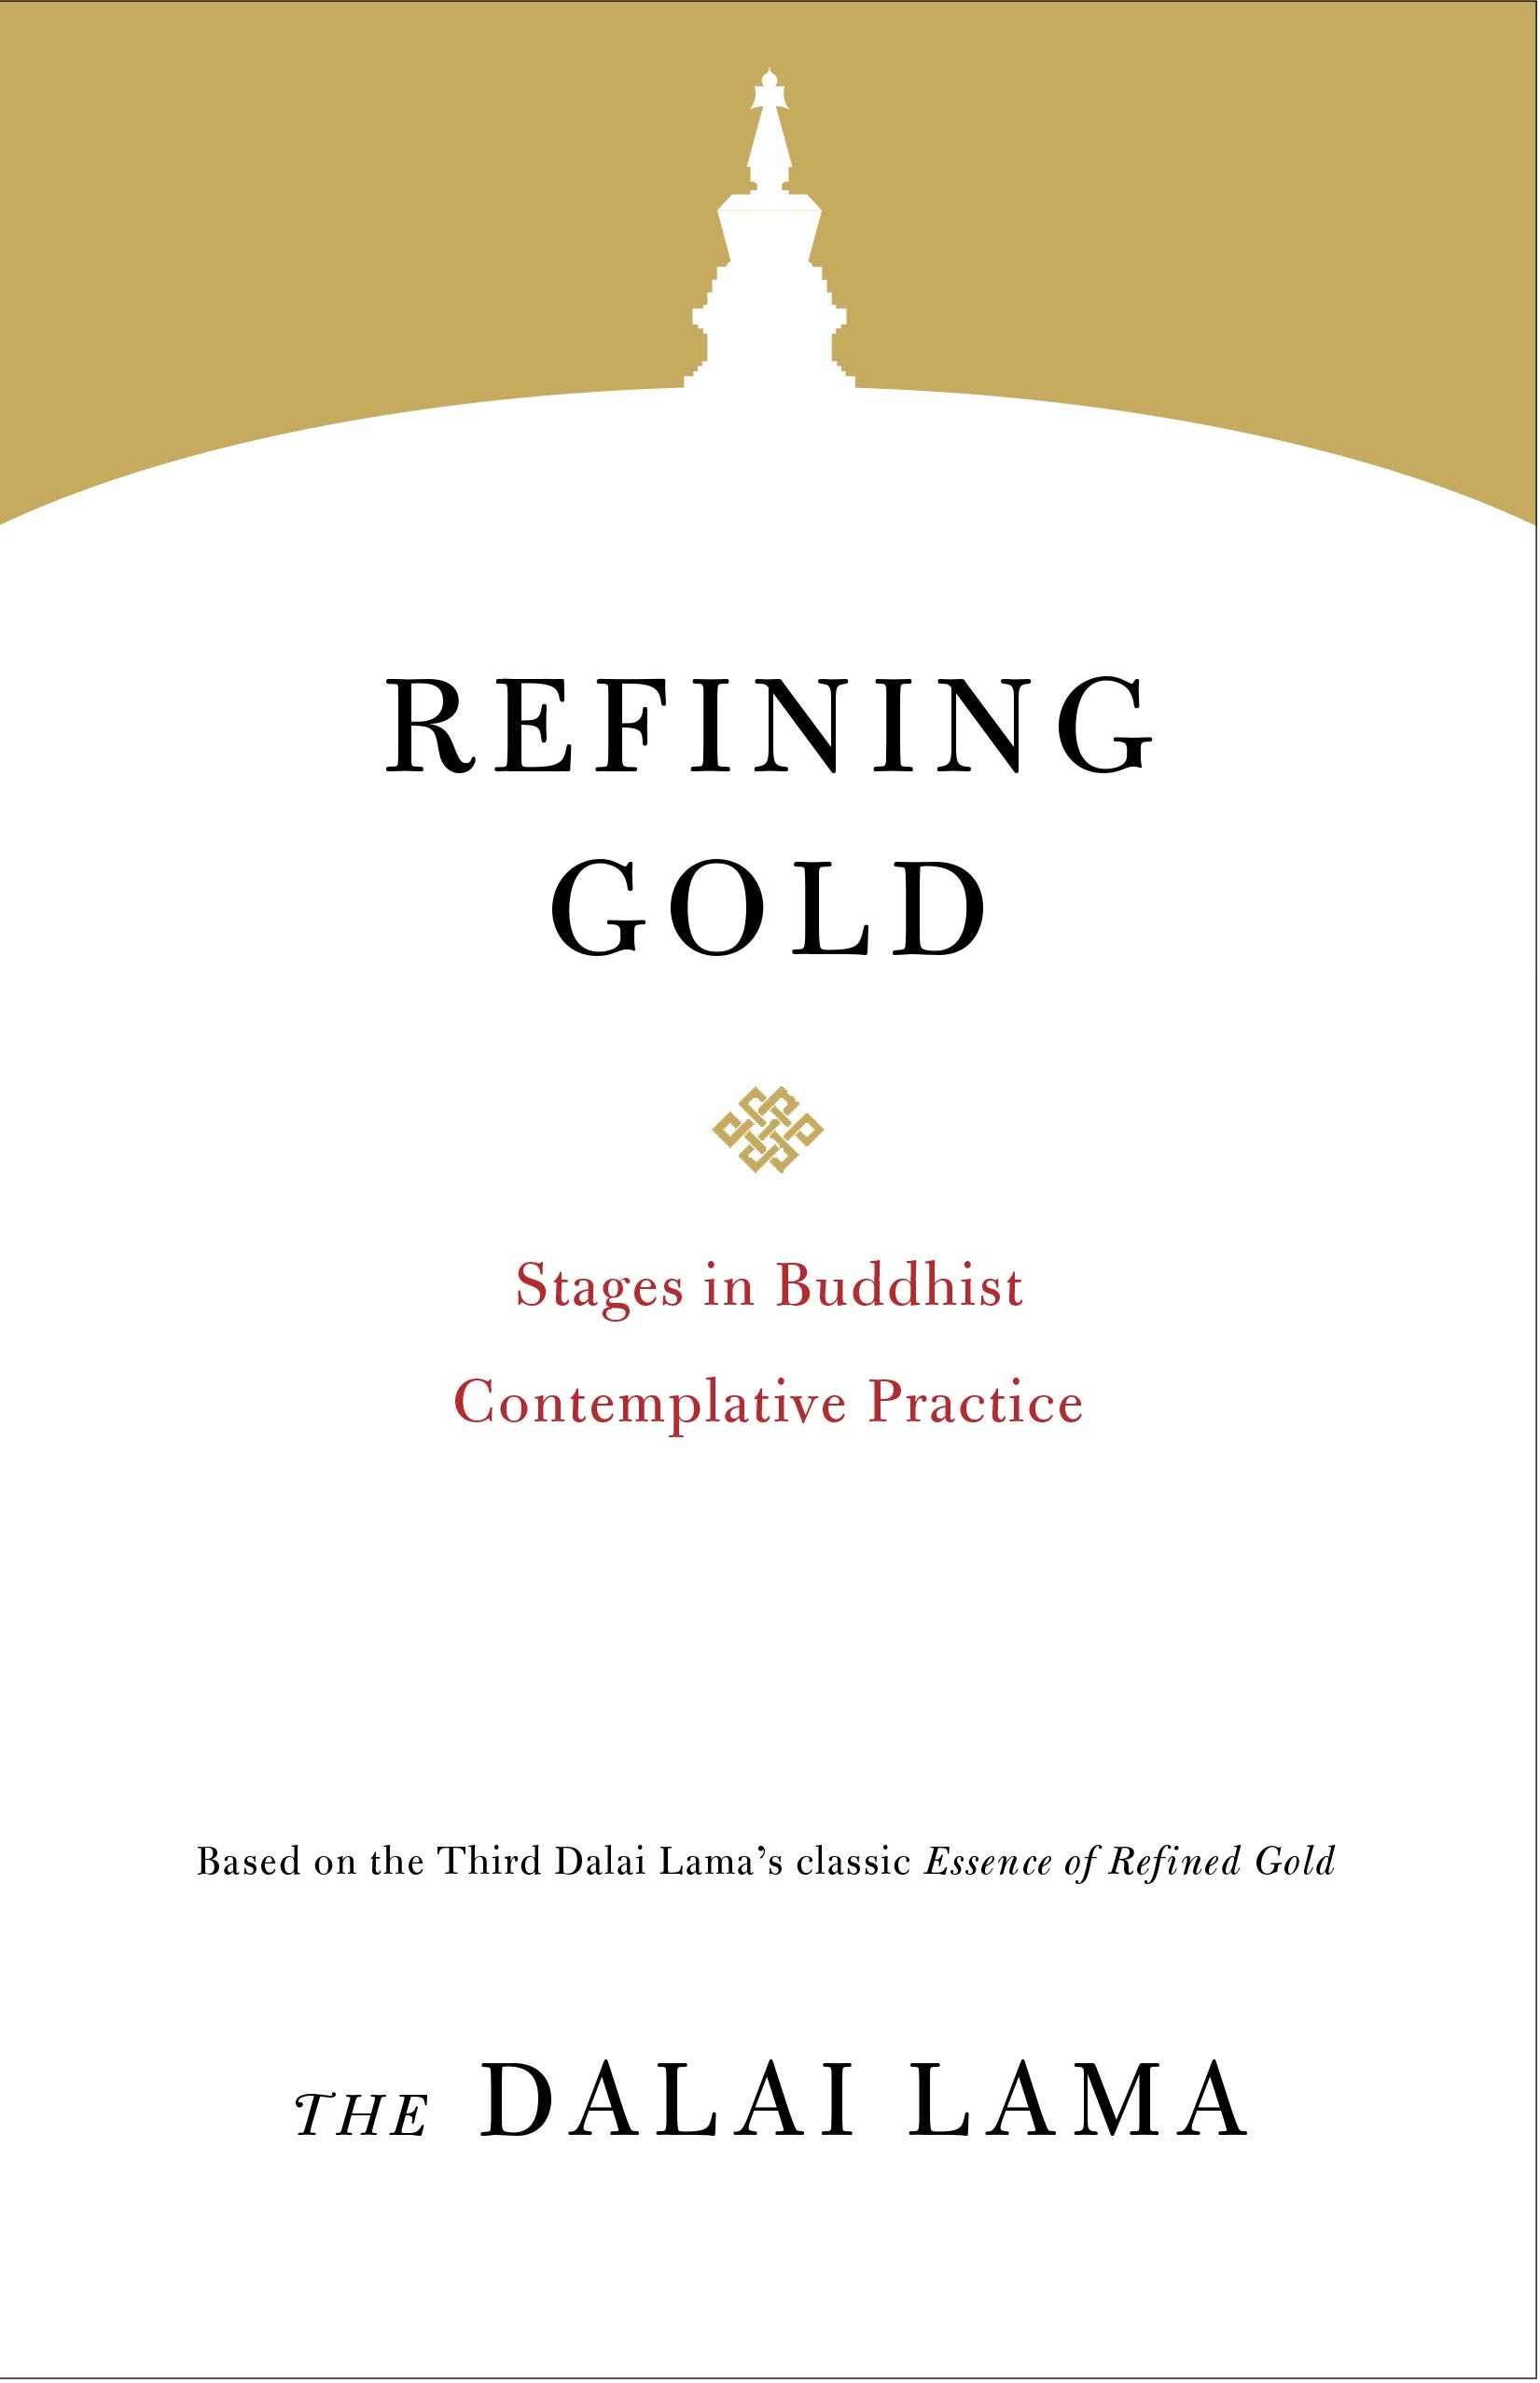 HHDL Refining Gold cover art